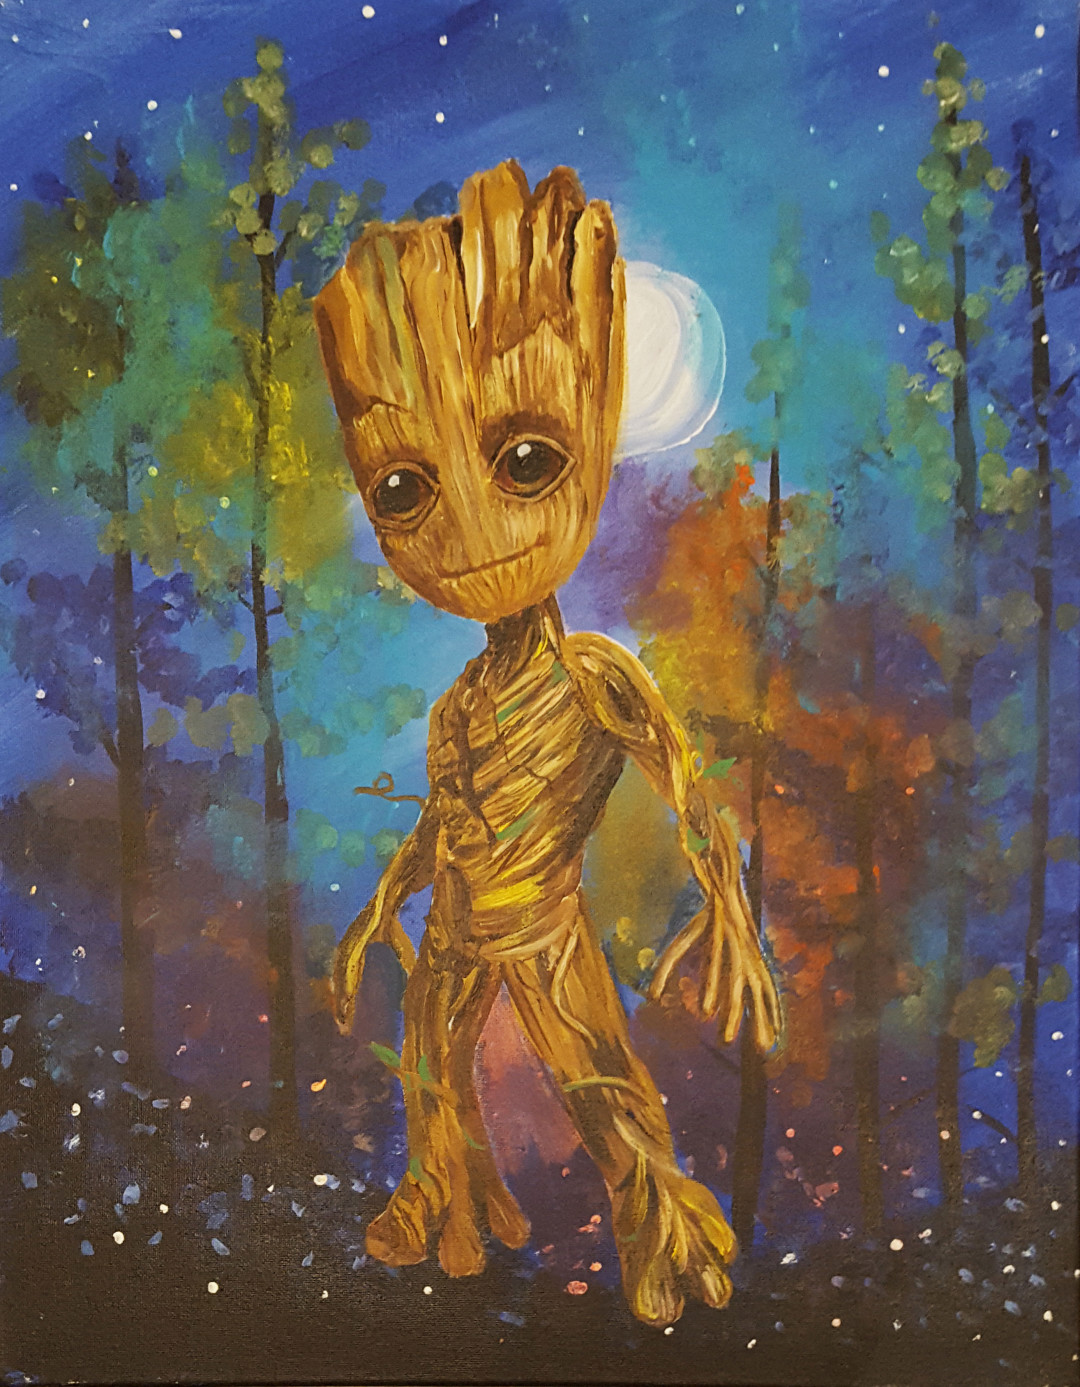 Painting: Into the Eyes of Baby Groot